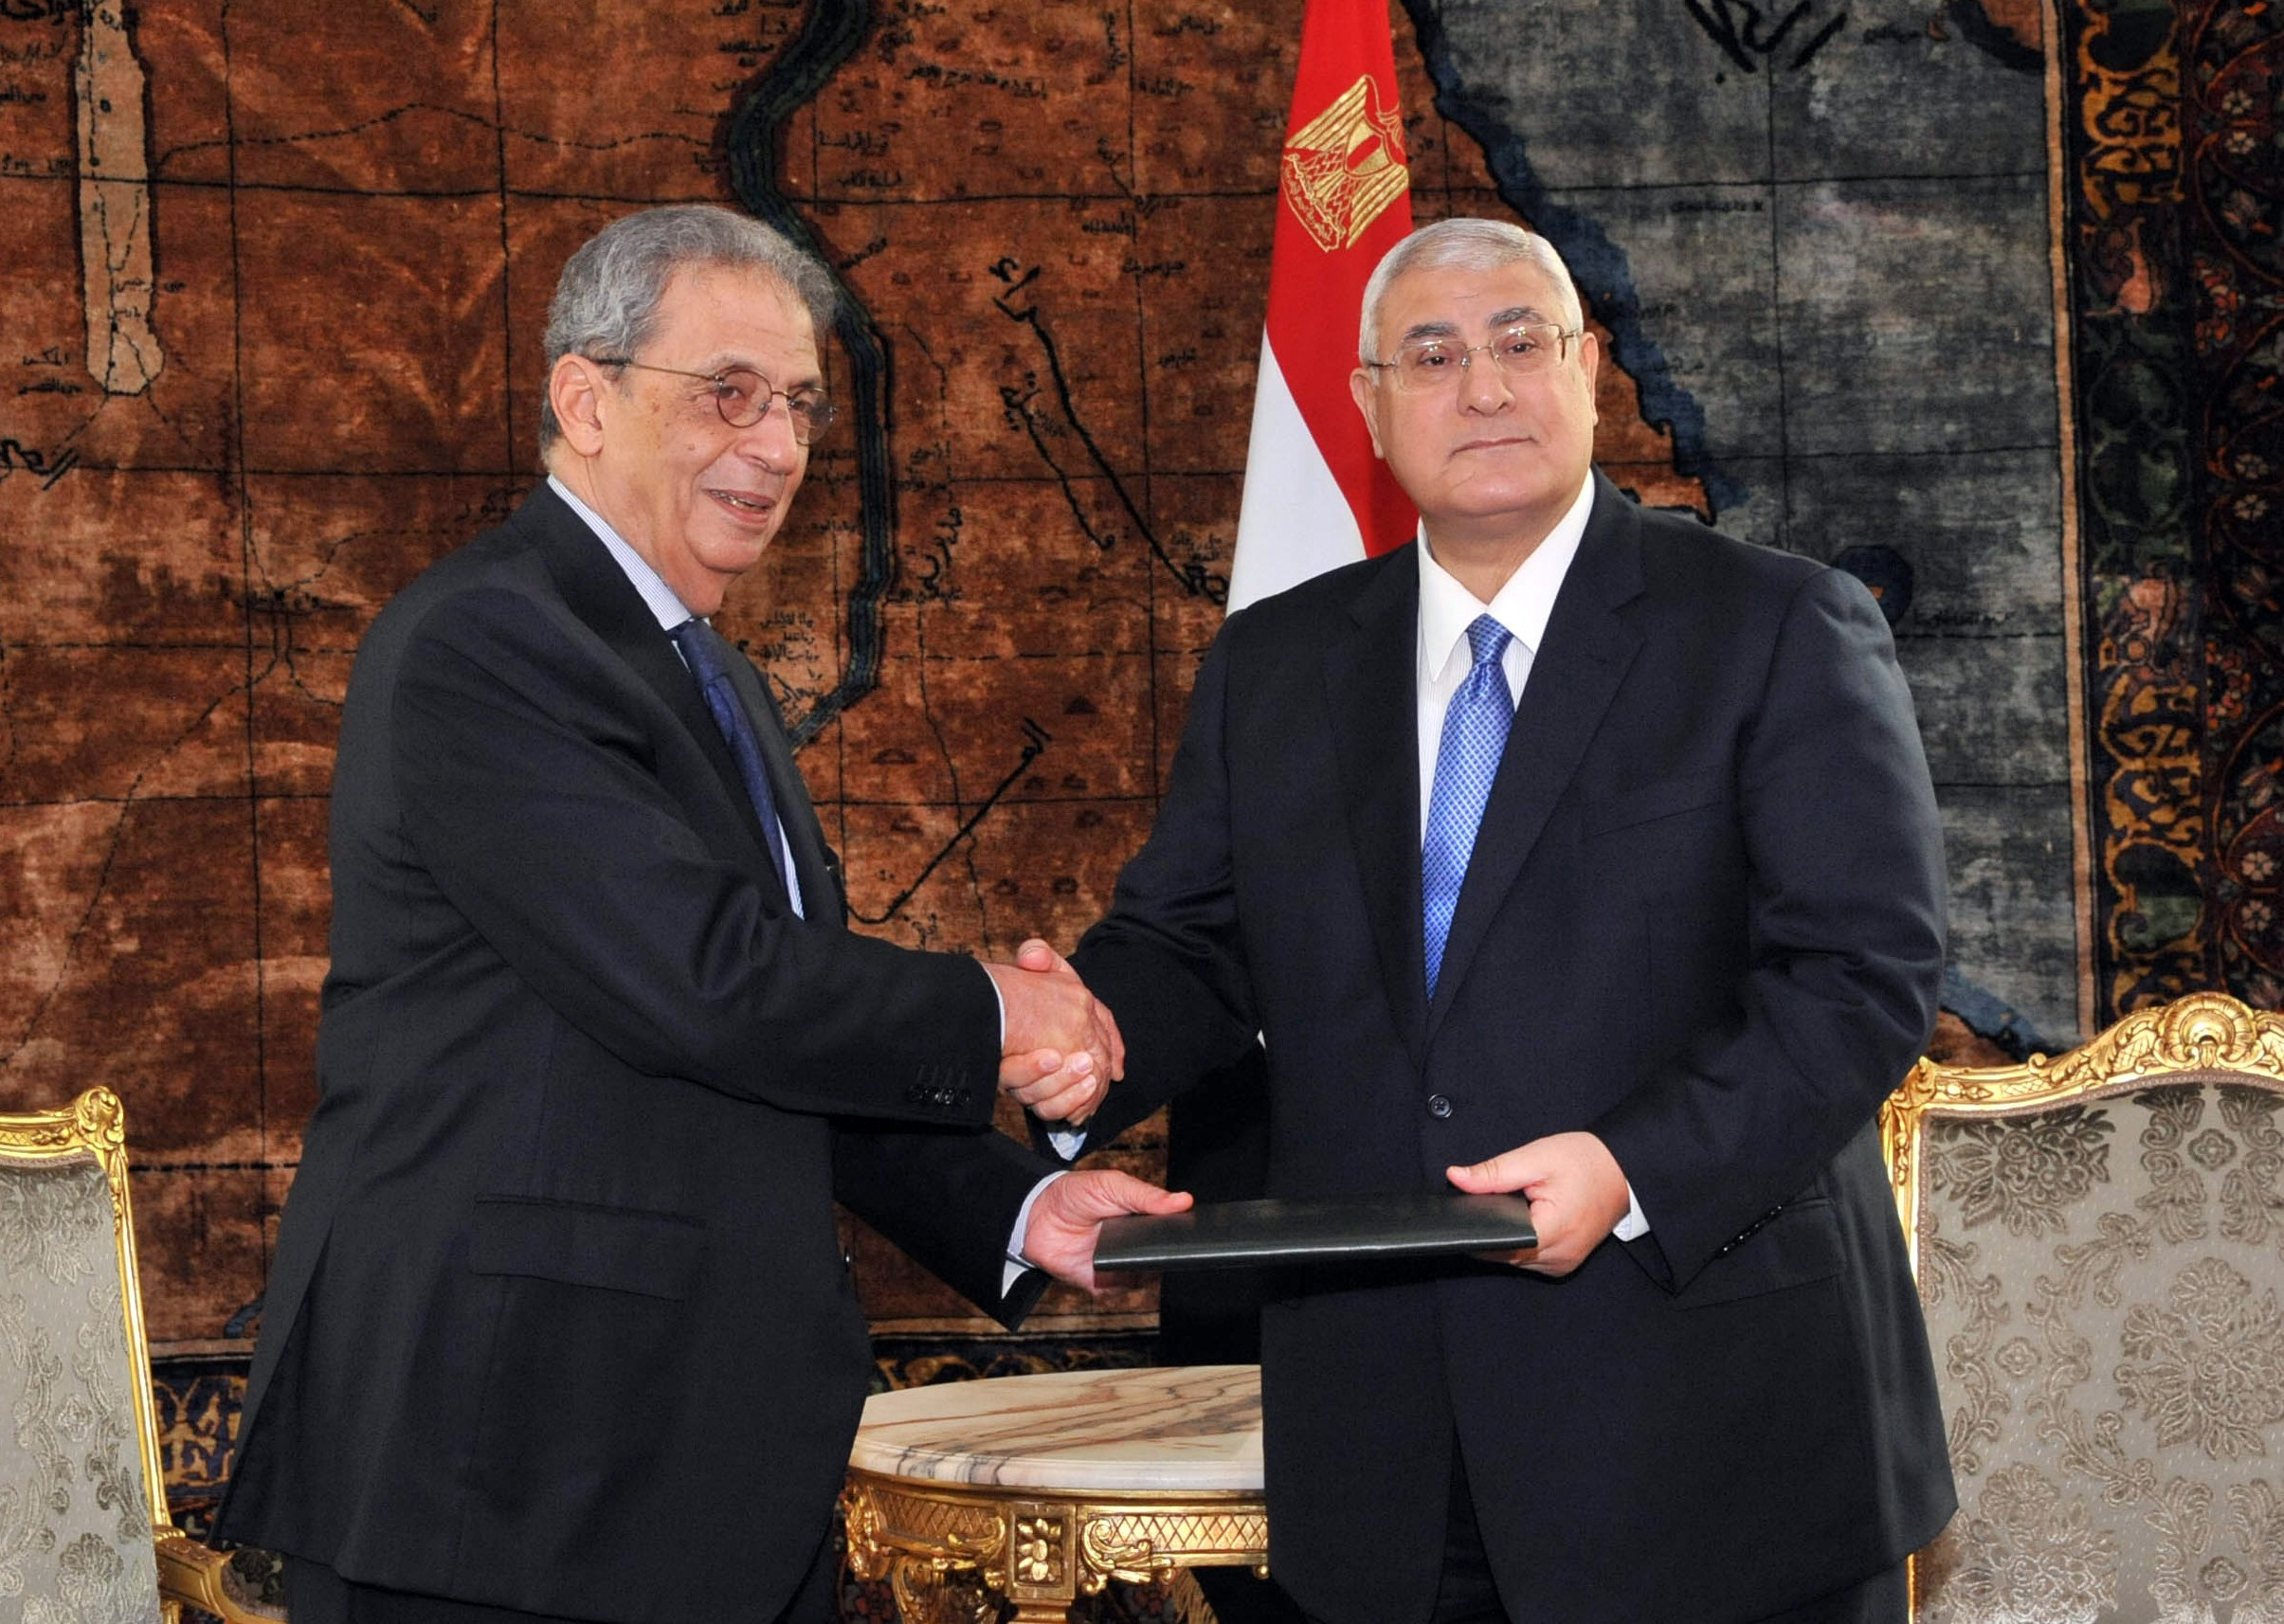 A handout picture released by Egyptian presidency shows interim president Adly Mansour  receiving the draft constitution from Amr Moussa, chairman of the Constitutional panel, on 3 December  2013.